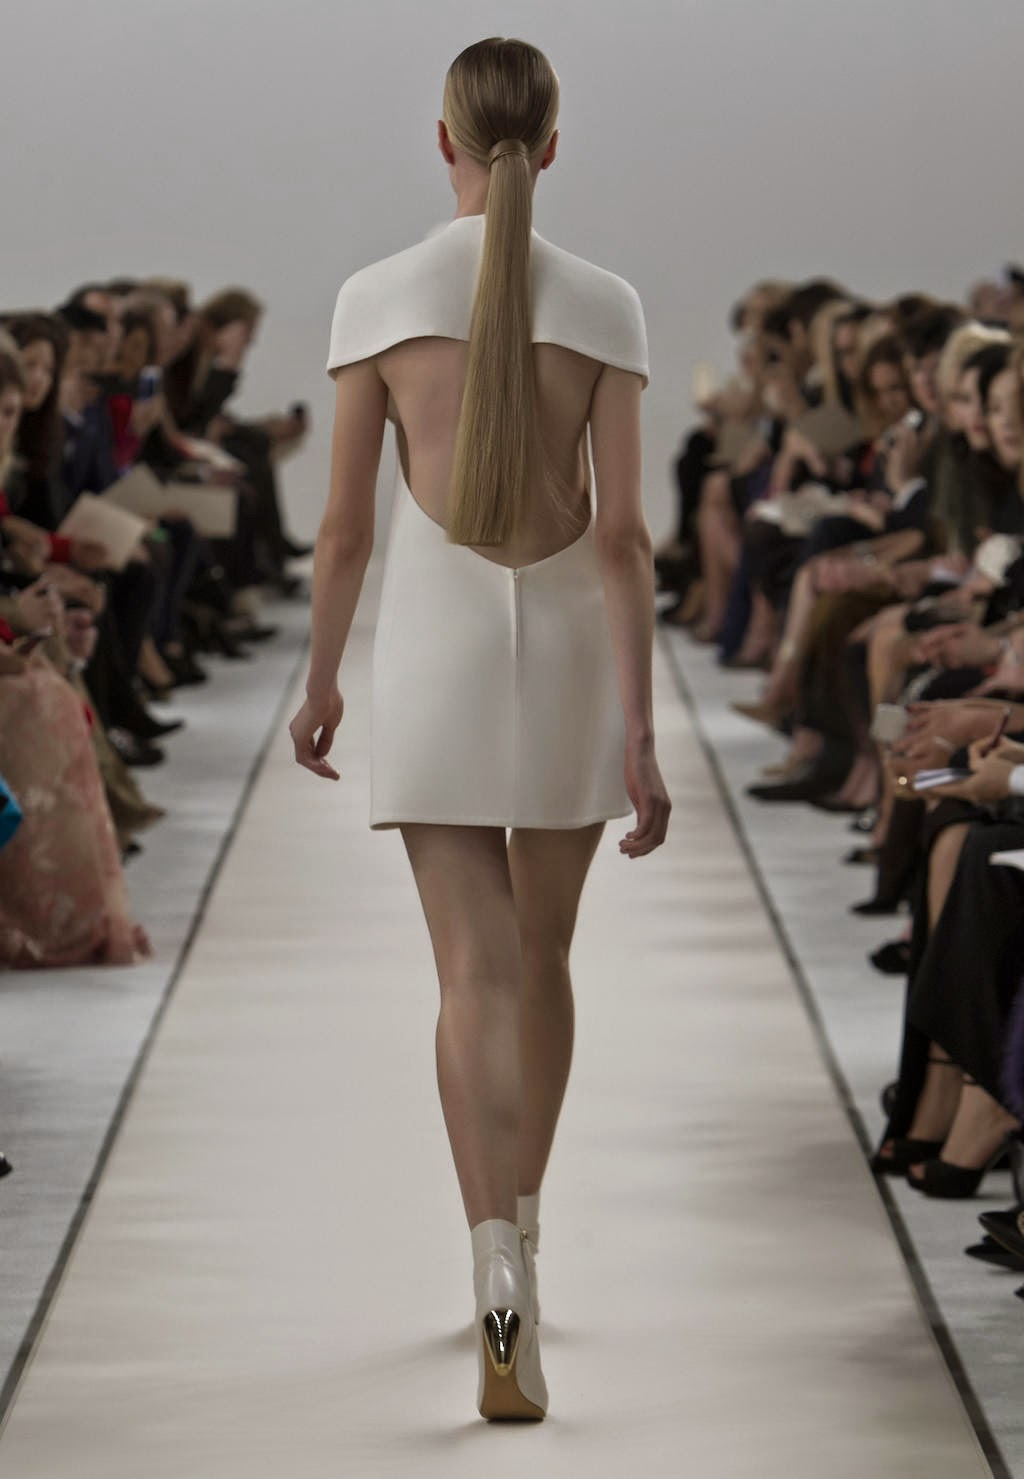 The Runway at Valentino's New York Couture Show